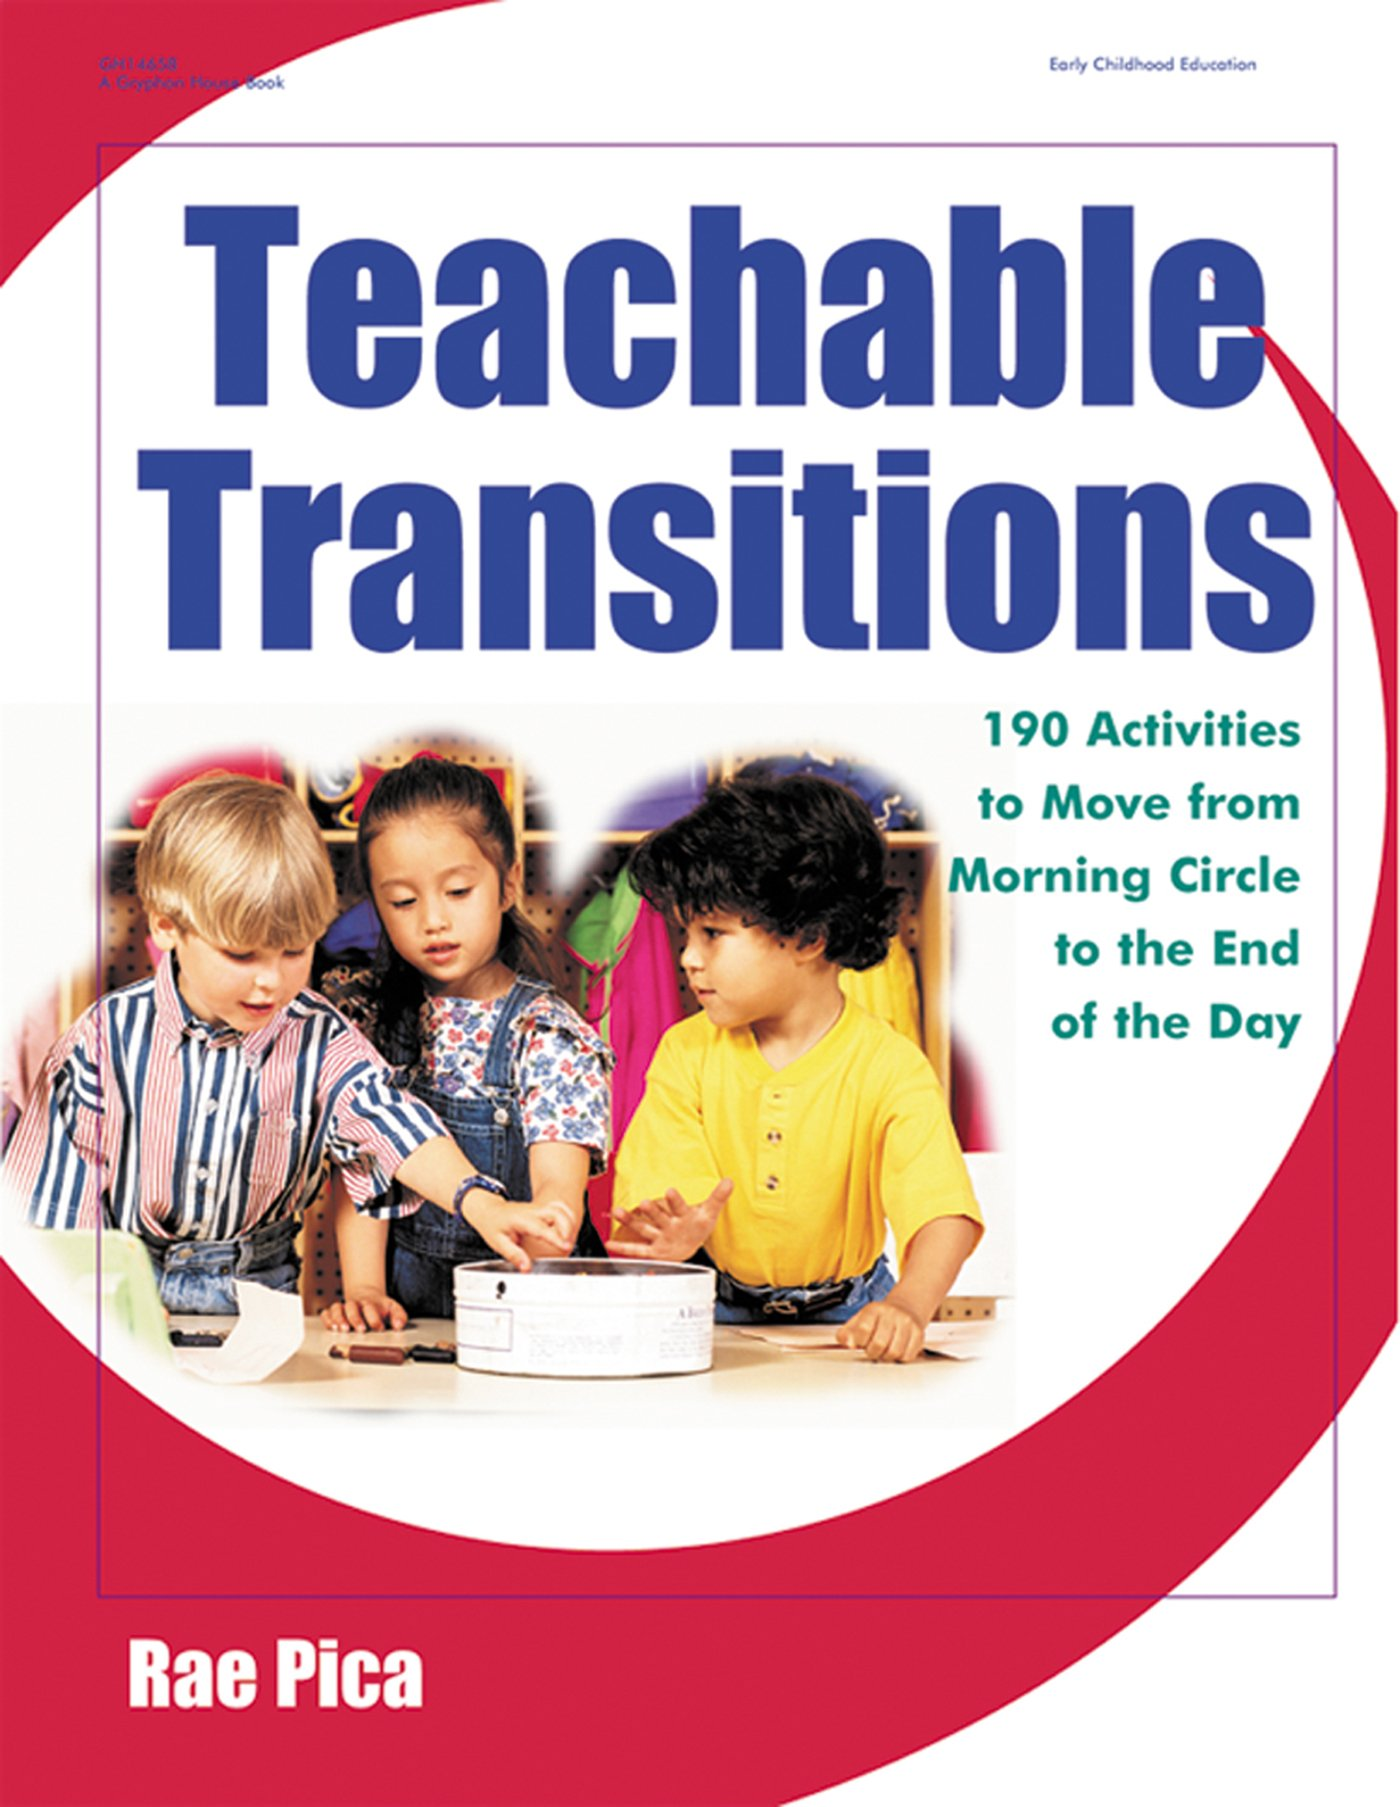 Teachable Transitions: 190 Activities to Move from Morning Circle to the  End of the Day: Rae Pica: 9780876592816: Amazon.com: Books